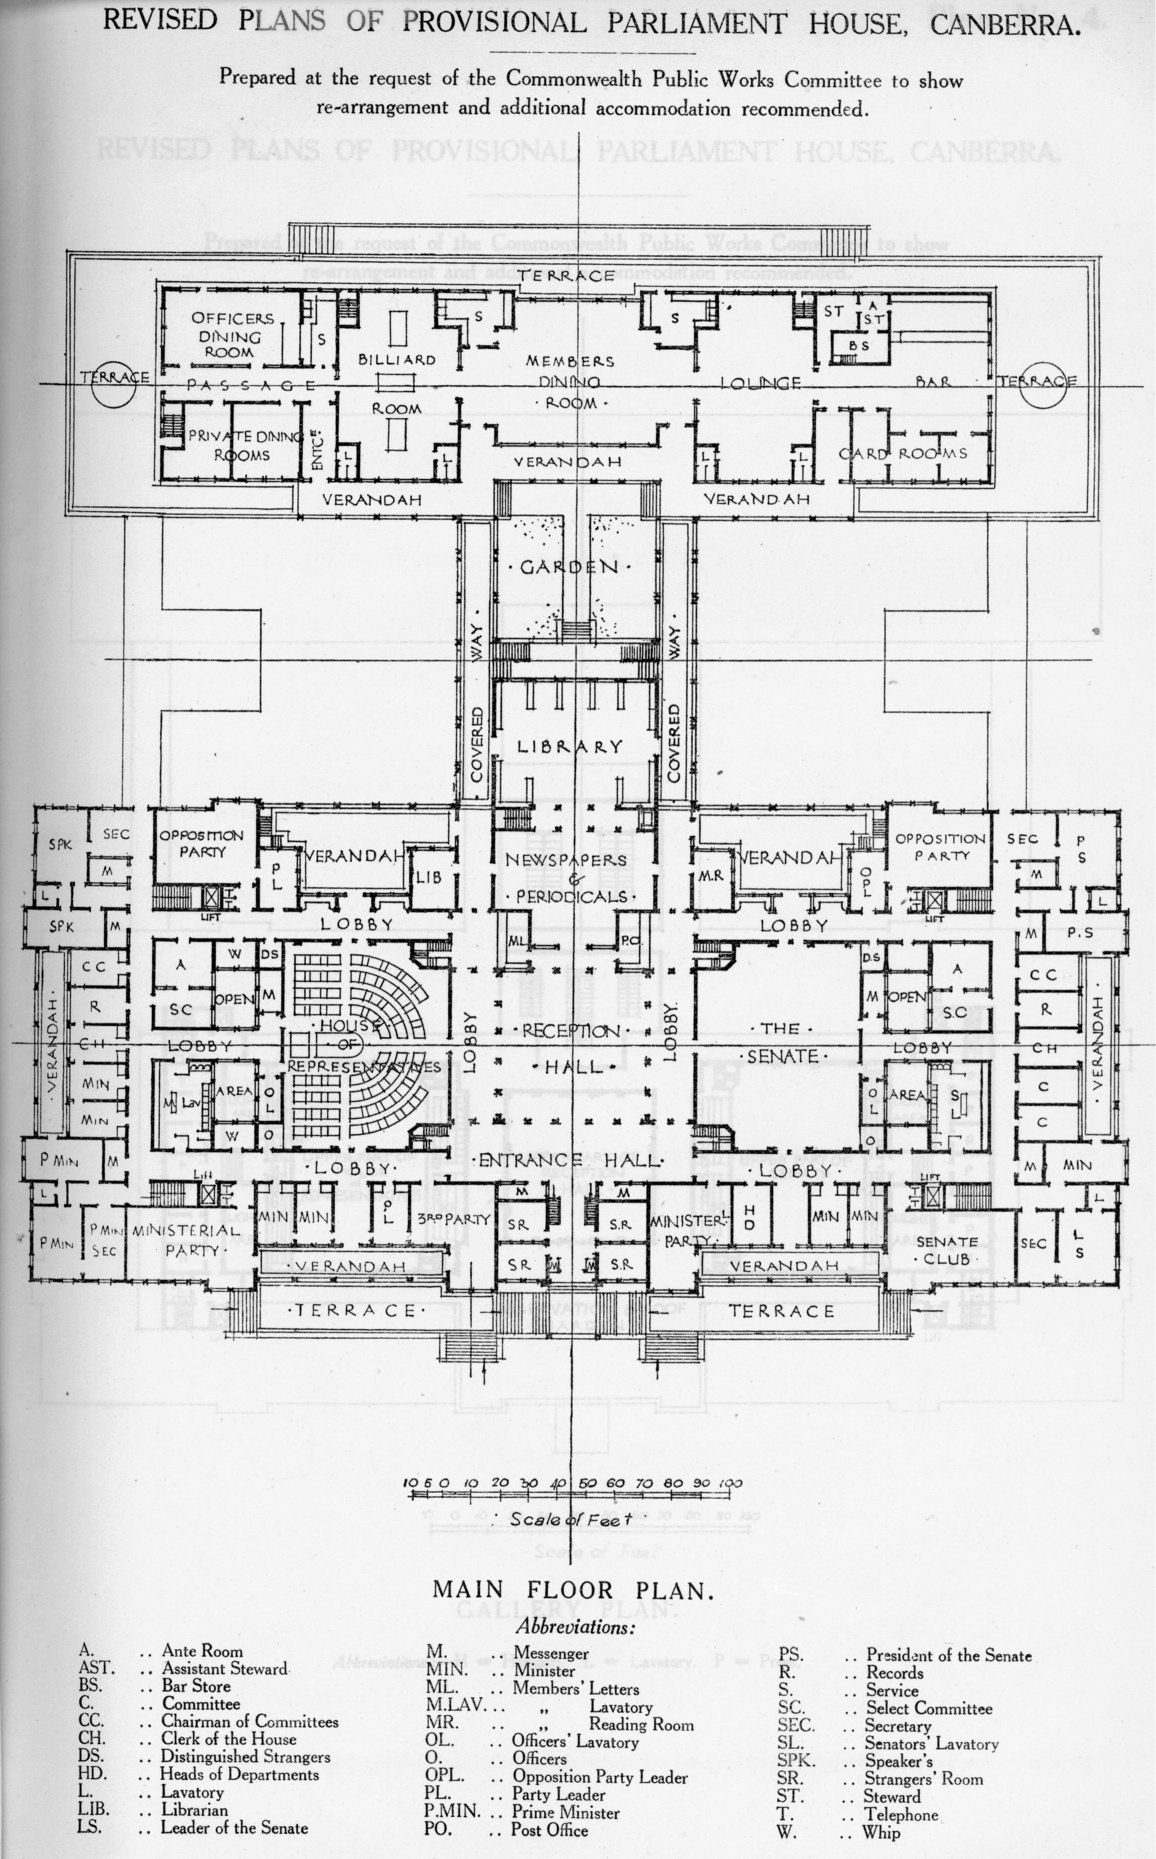 Revised Main Floor Plans Of Provisional